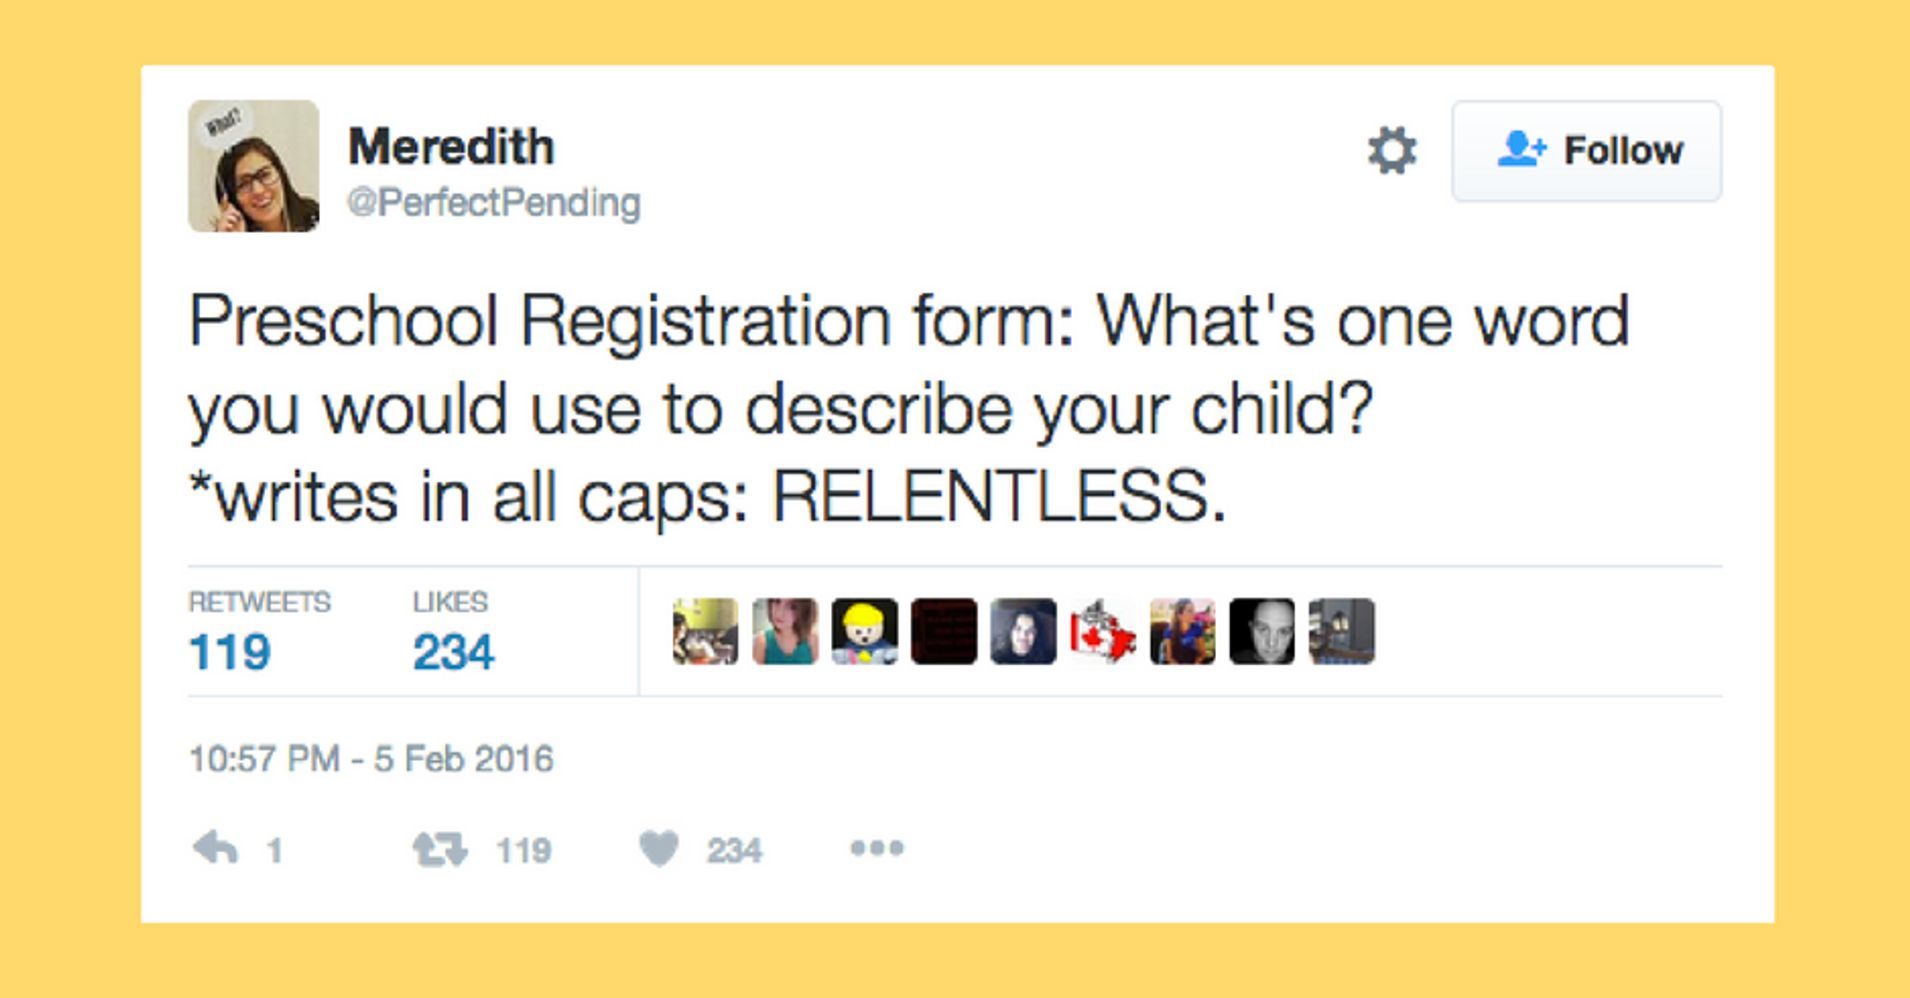 The Most Hilarious Tweets From Parents This Year HuffPost - 30 hilarious tweets that perfectly describe how being a parent works